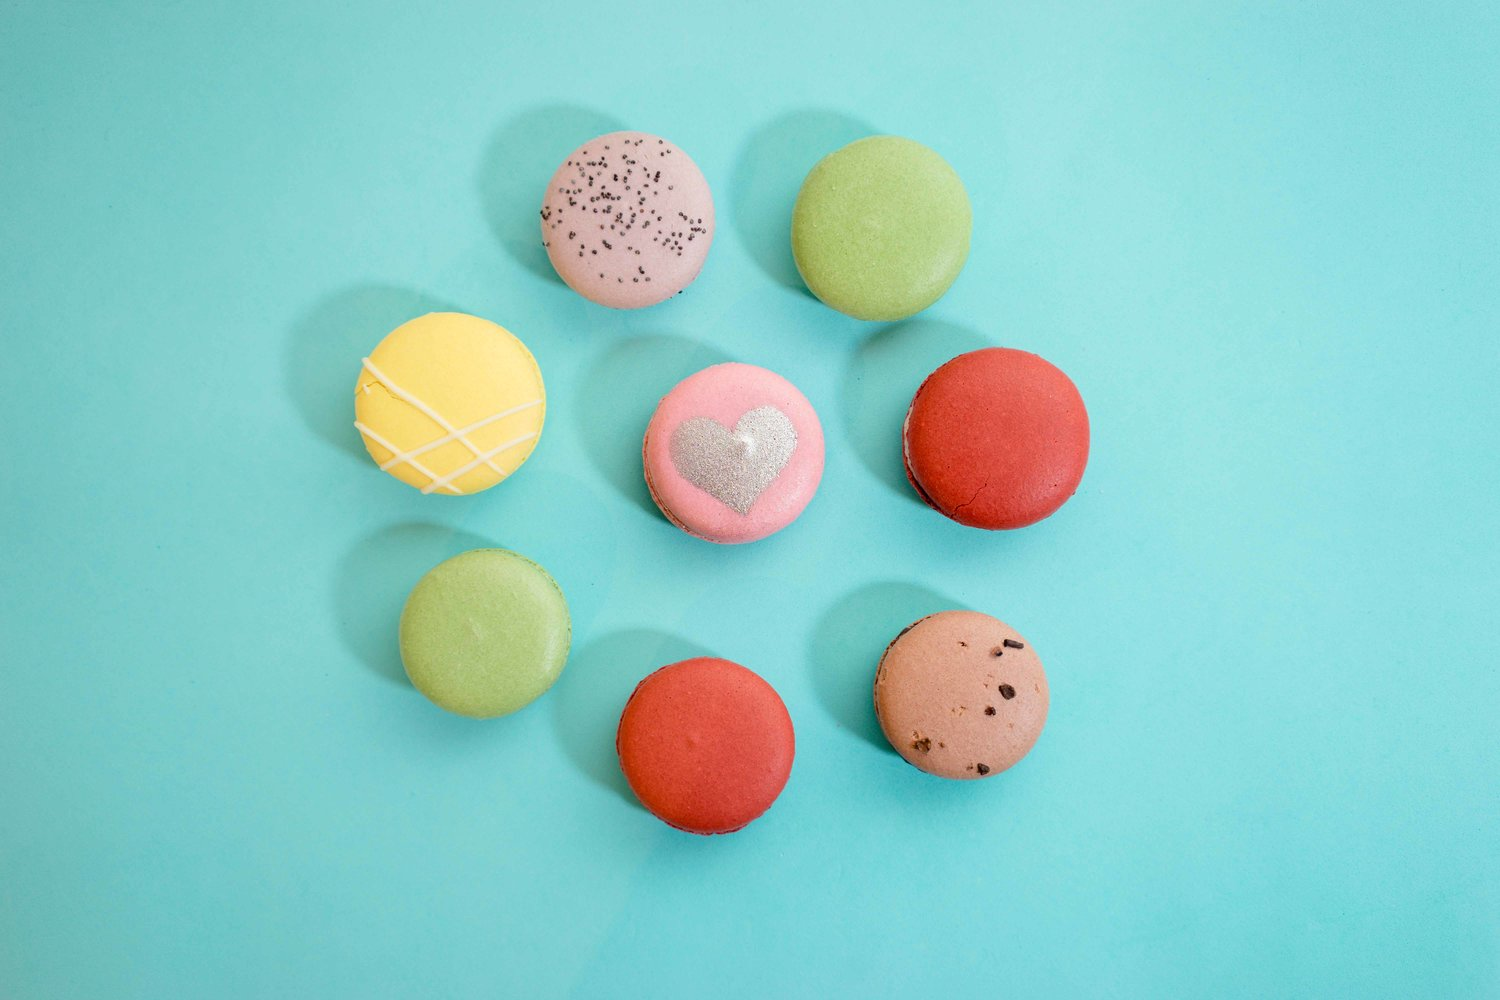 macarons-on-blue-background-photo-by-afewgoodclicks-in-palo-alto